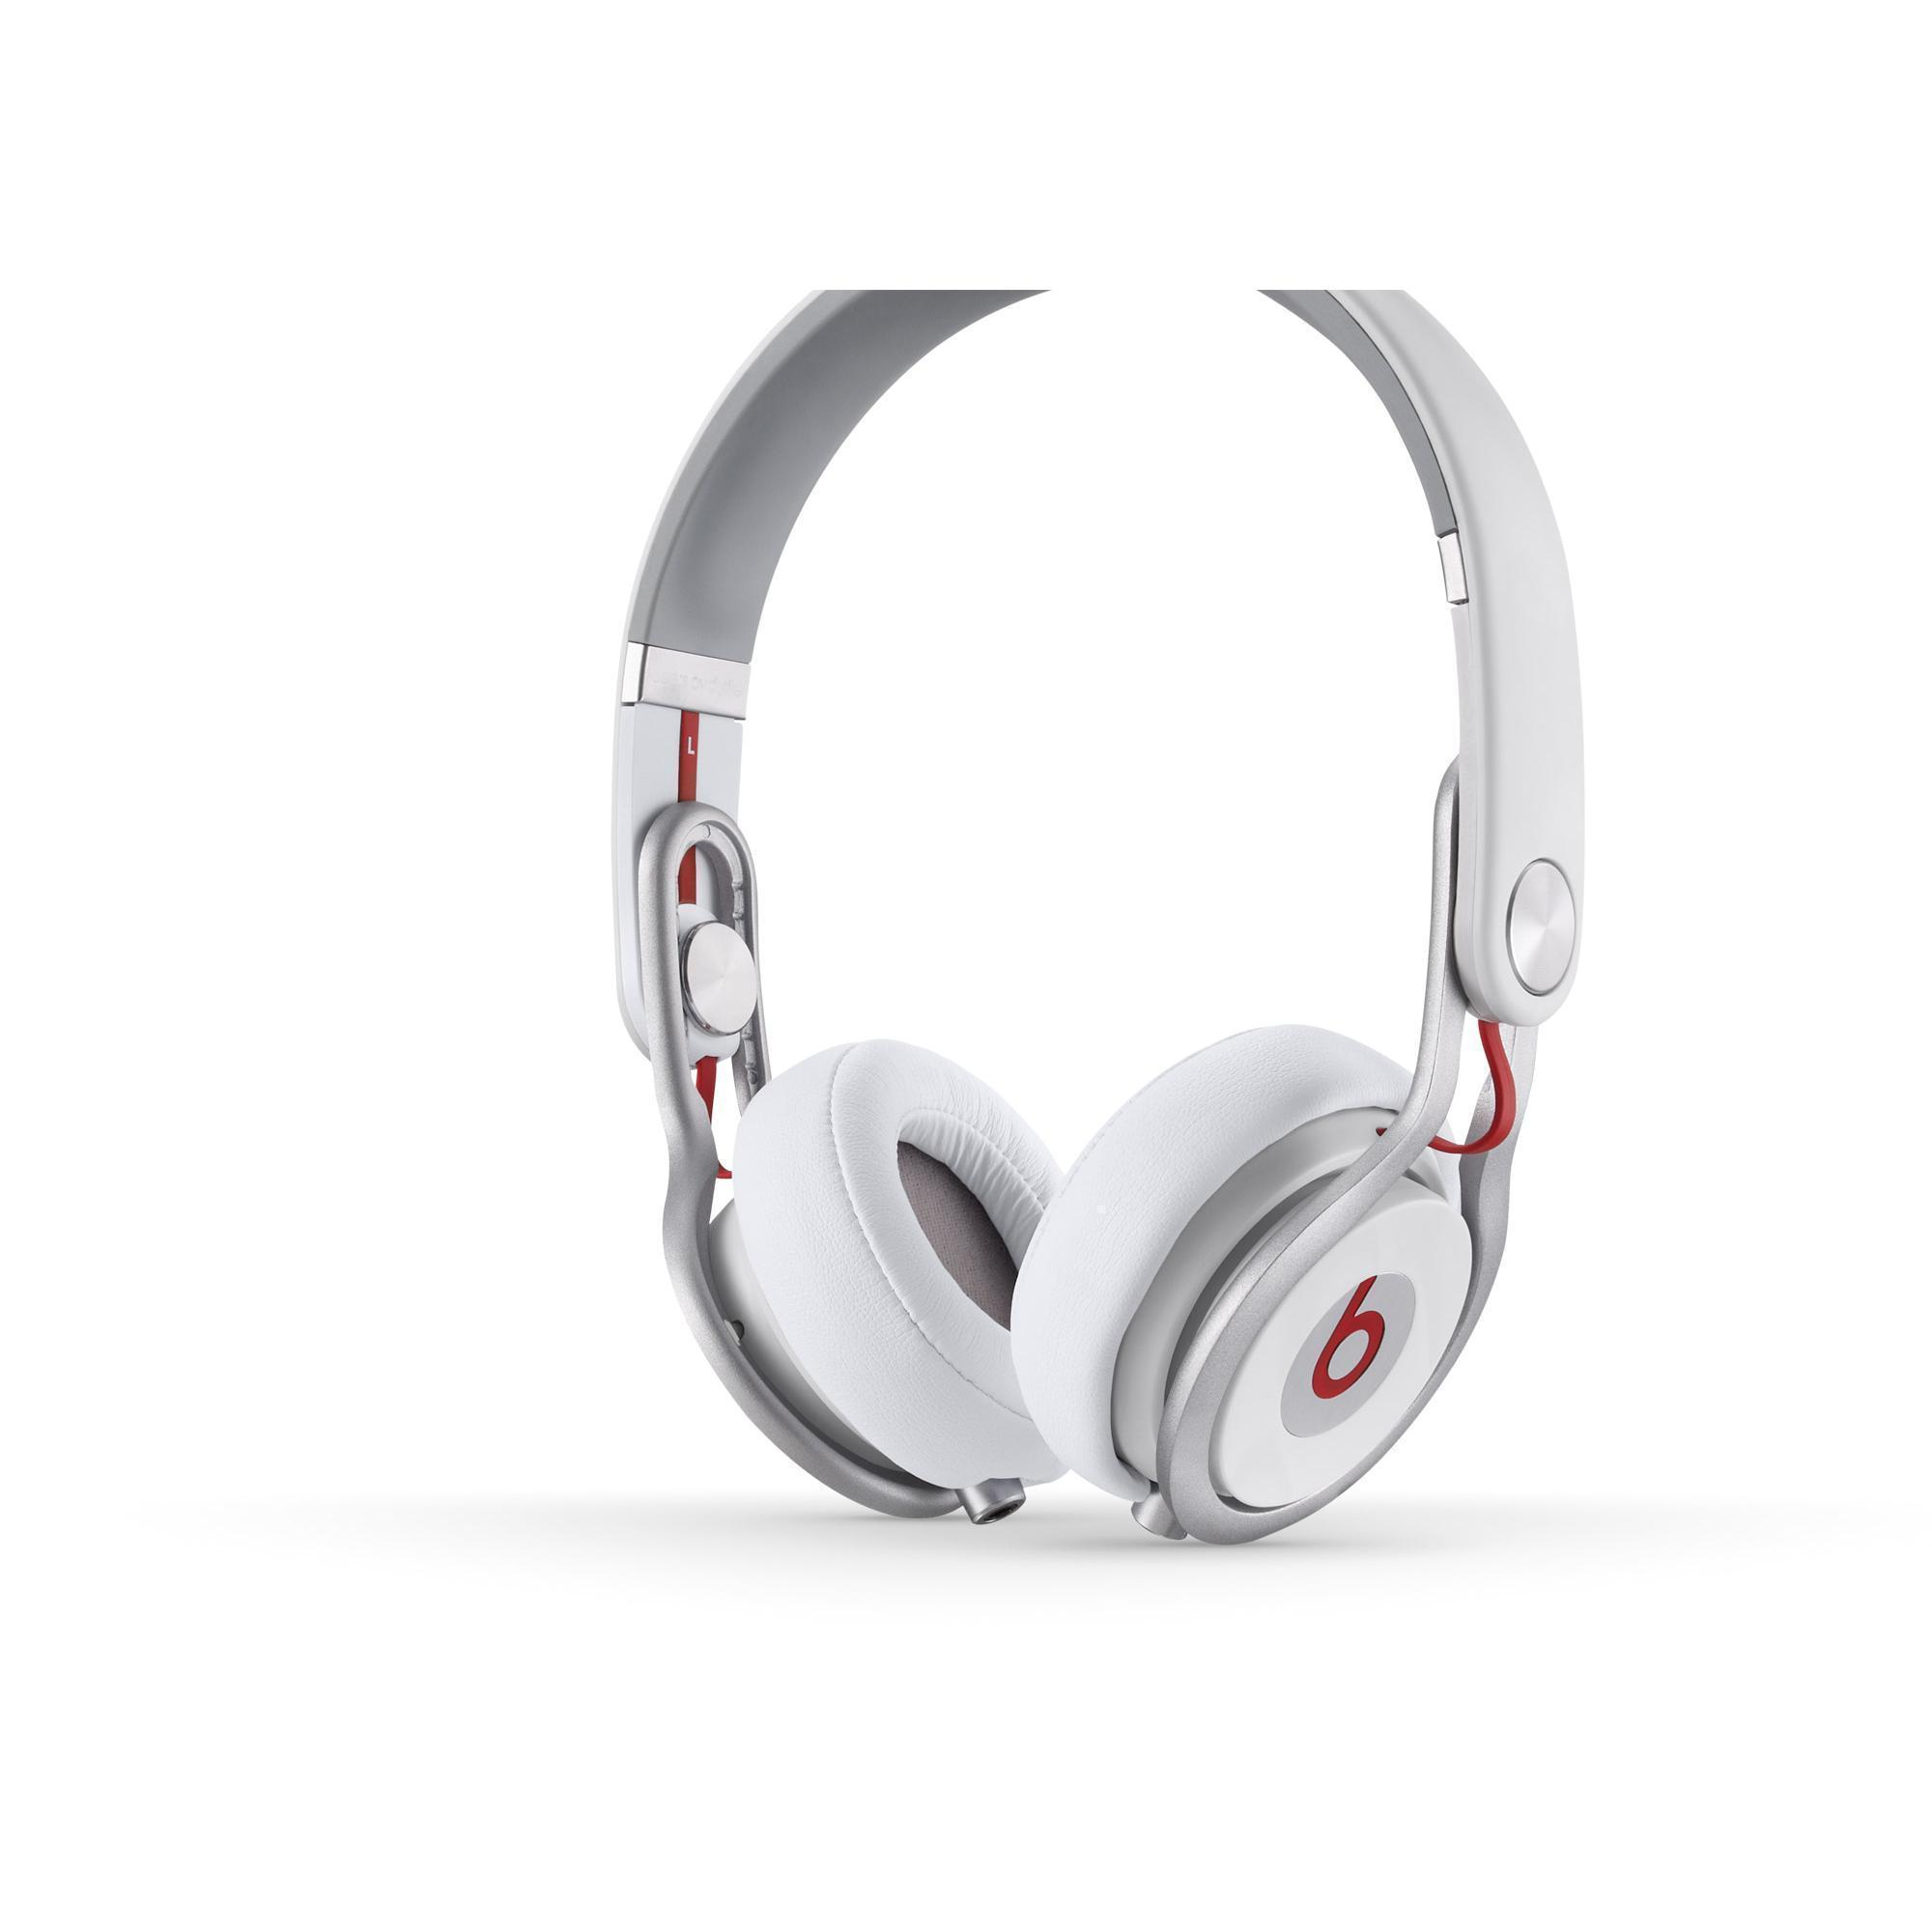 Auriculares Beats BY Dr. Dre Mixr ( David Guetta ) - Blanco